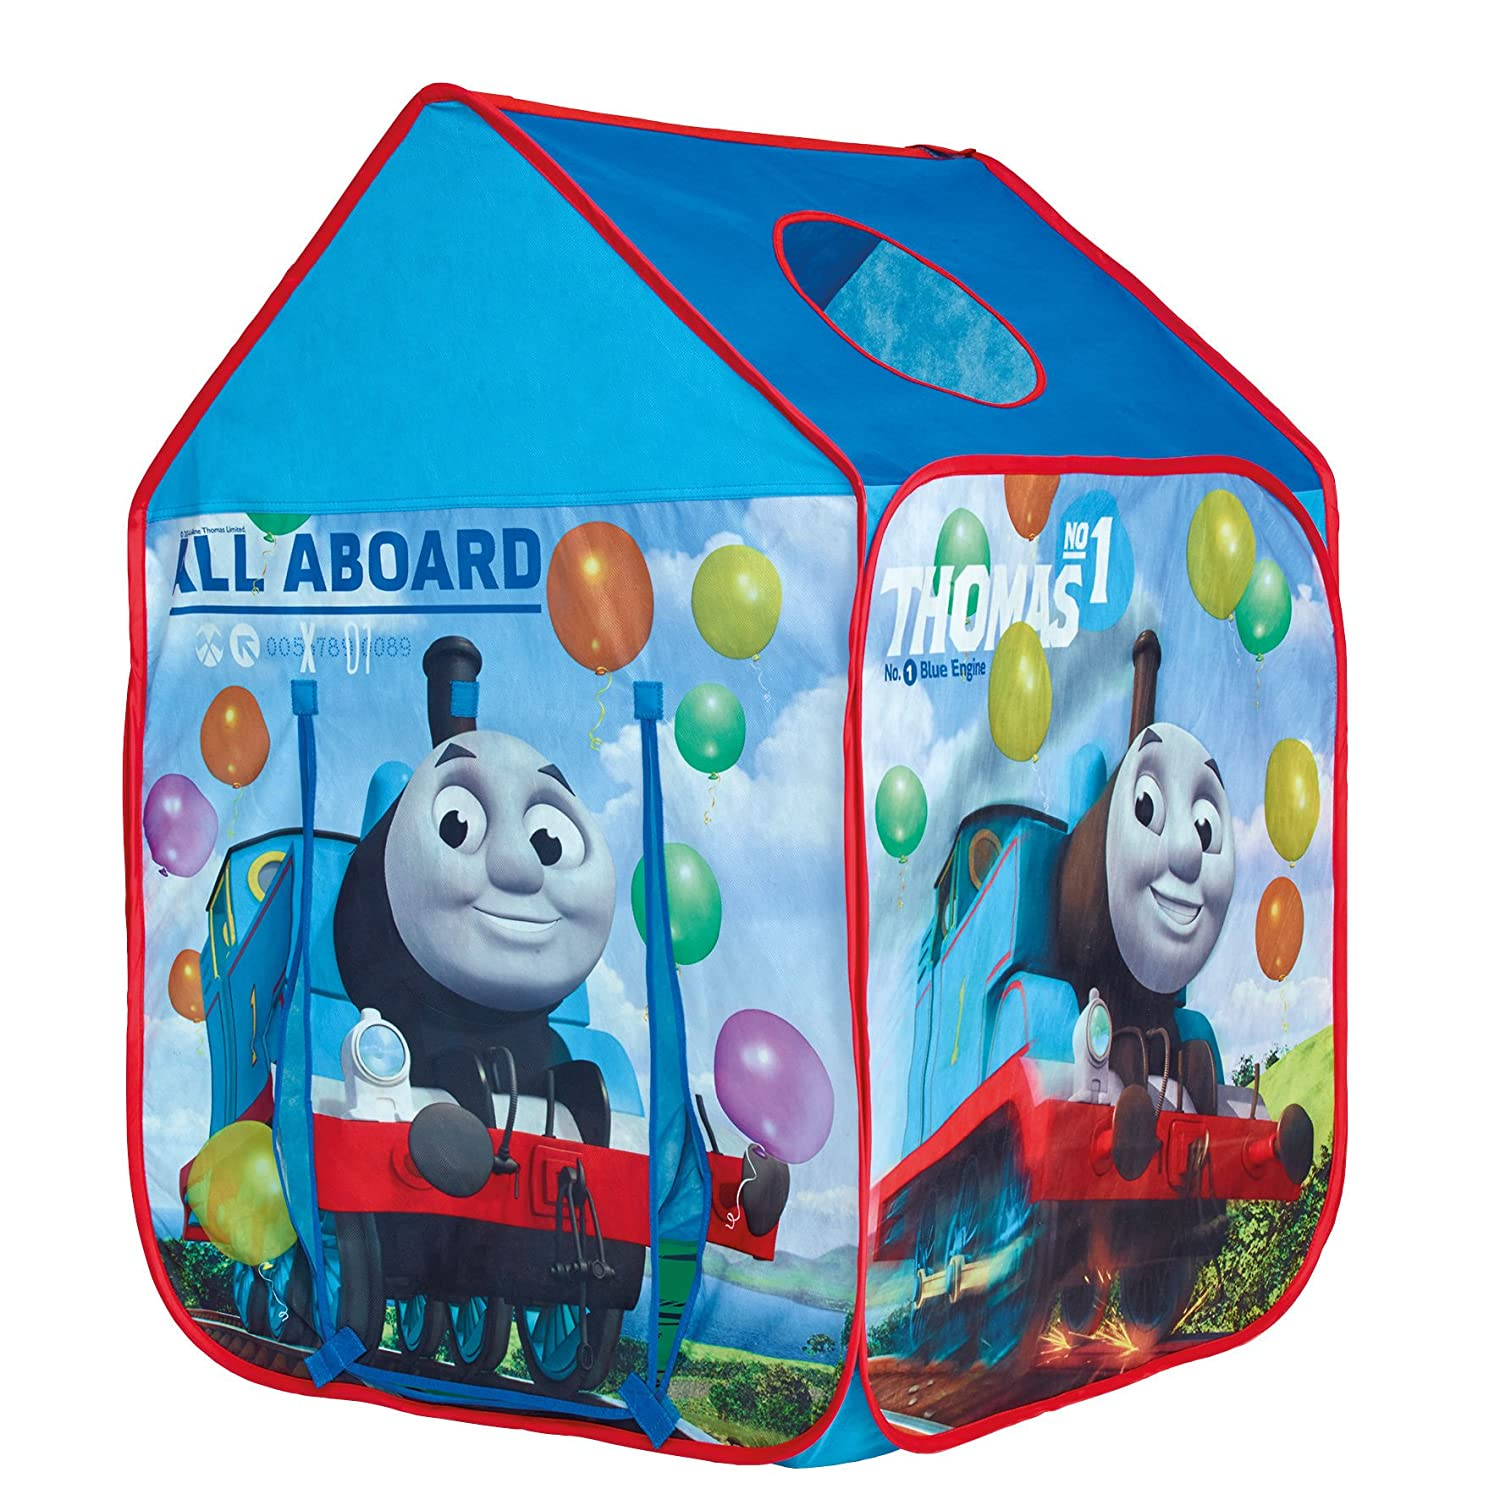 Thomas The Tank Engine Wendy House Playhouse - Pop Up Role Play Tent Amazon.co.uk Toys u0026 Games  sc 1 st  Amazon UK & Thomas The Tank Engine Wendy House Playhouse - Pop Up Role Play ...